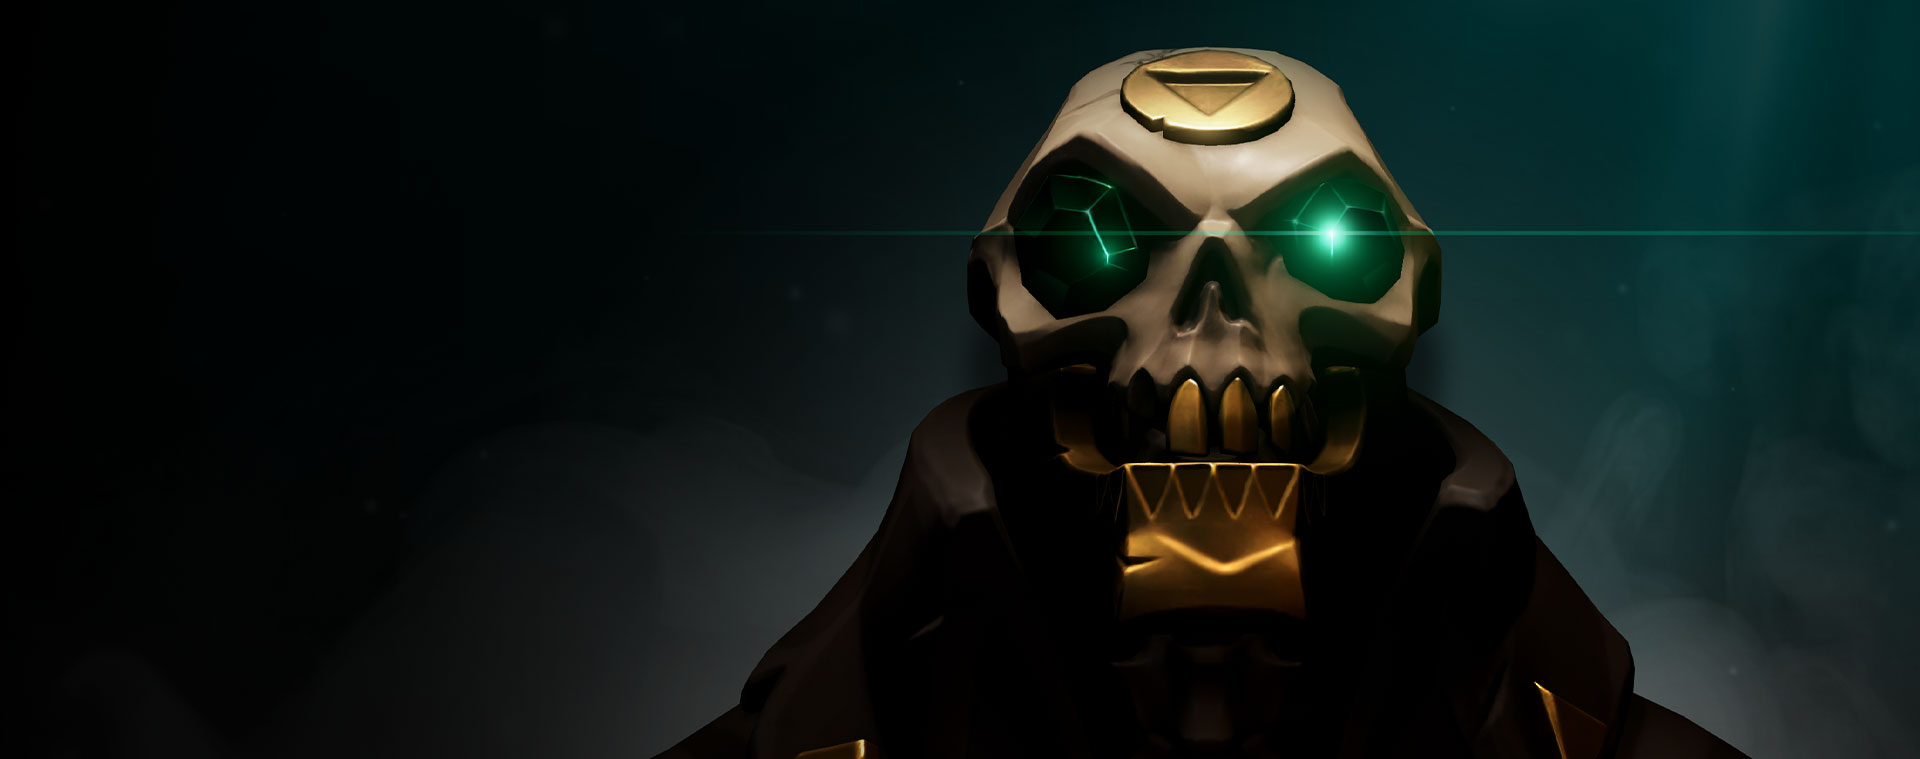 Skull from Sea of Thieves with green gems as eyes